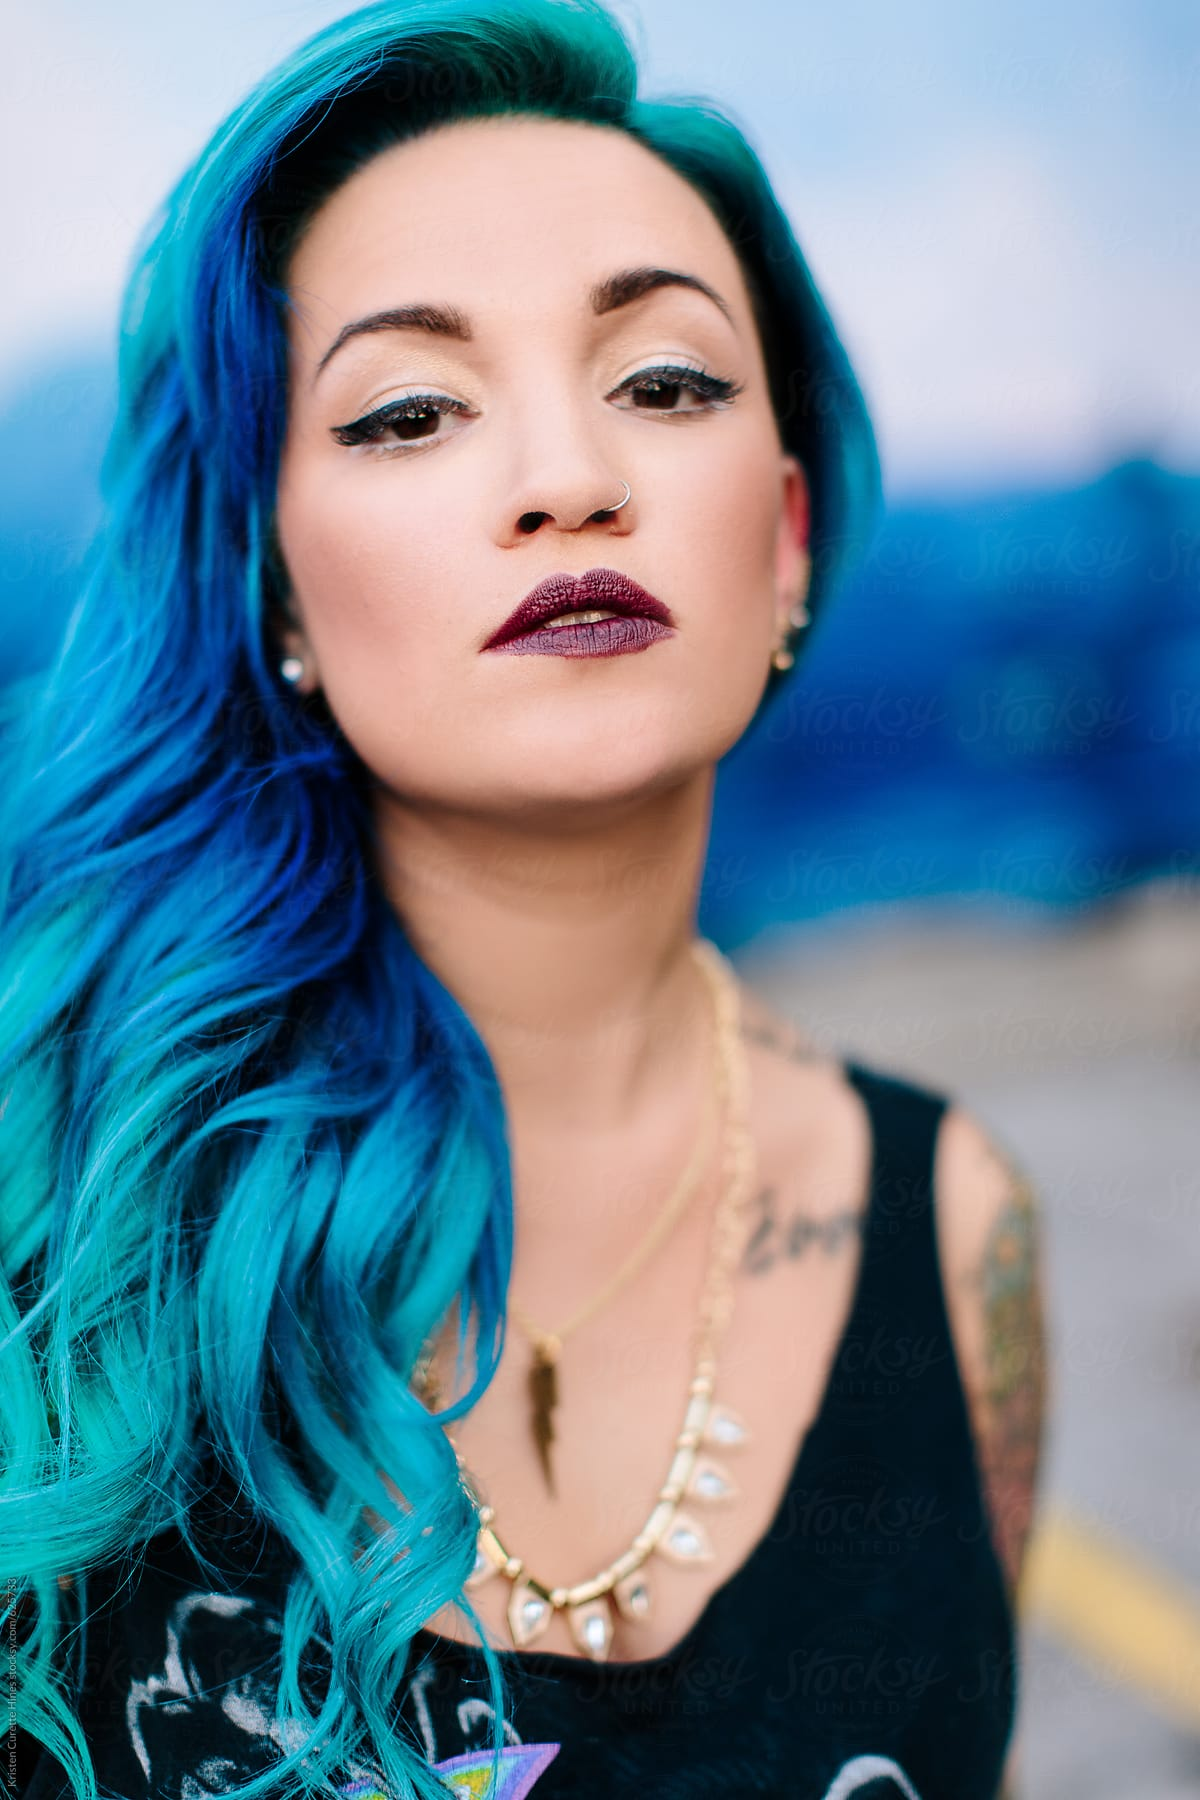 Vertical Portrait Of A Beautiful Hispanic Woman With Blue Dyed Hair By Kristen Curette Daemaine Hines Stocksy United